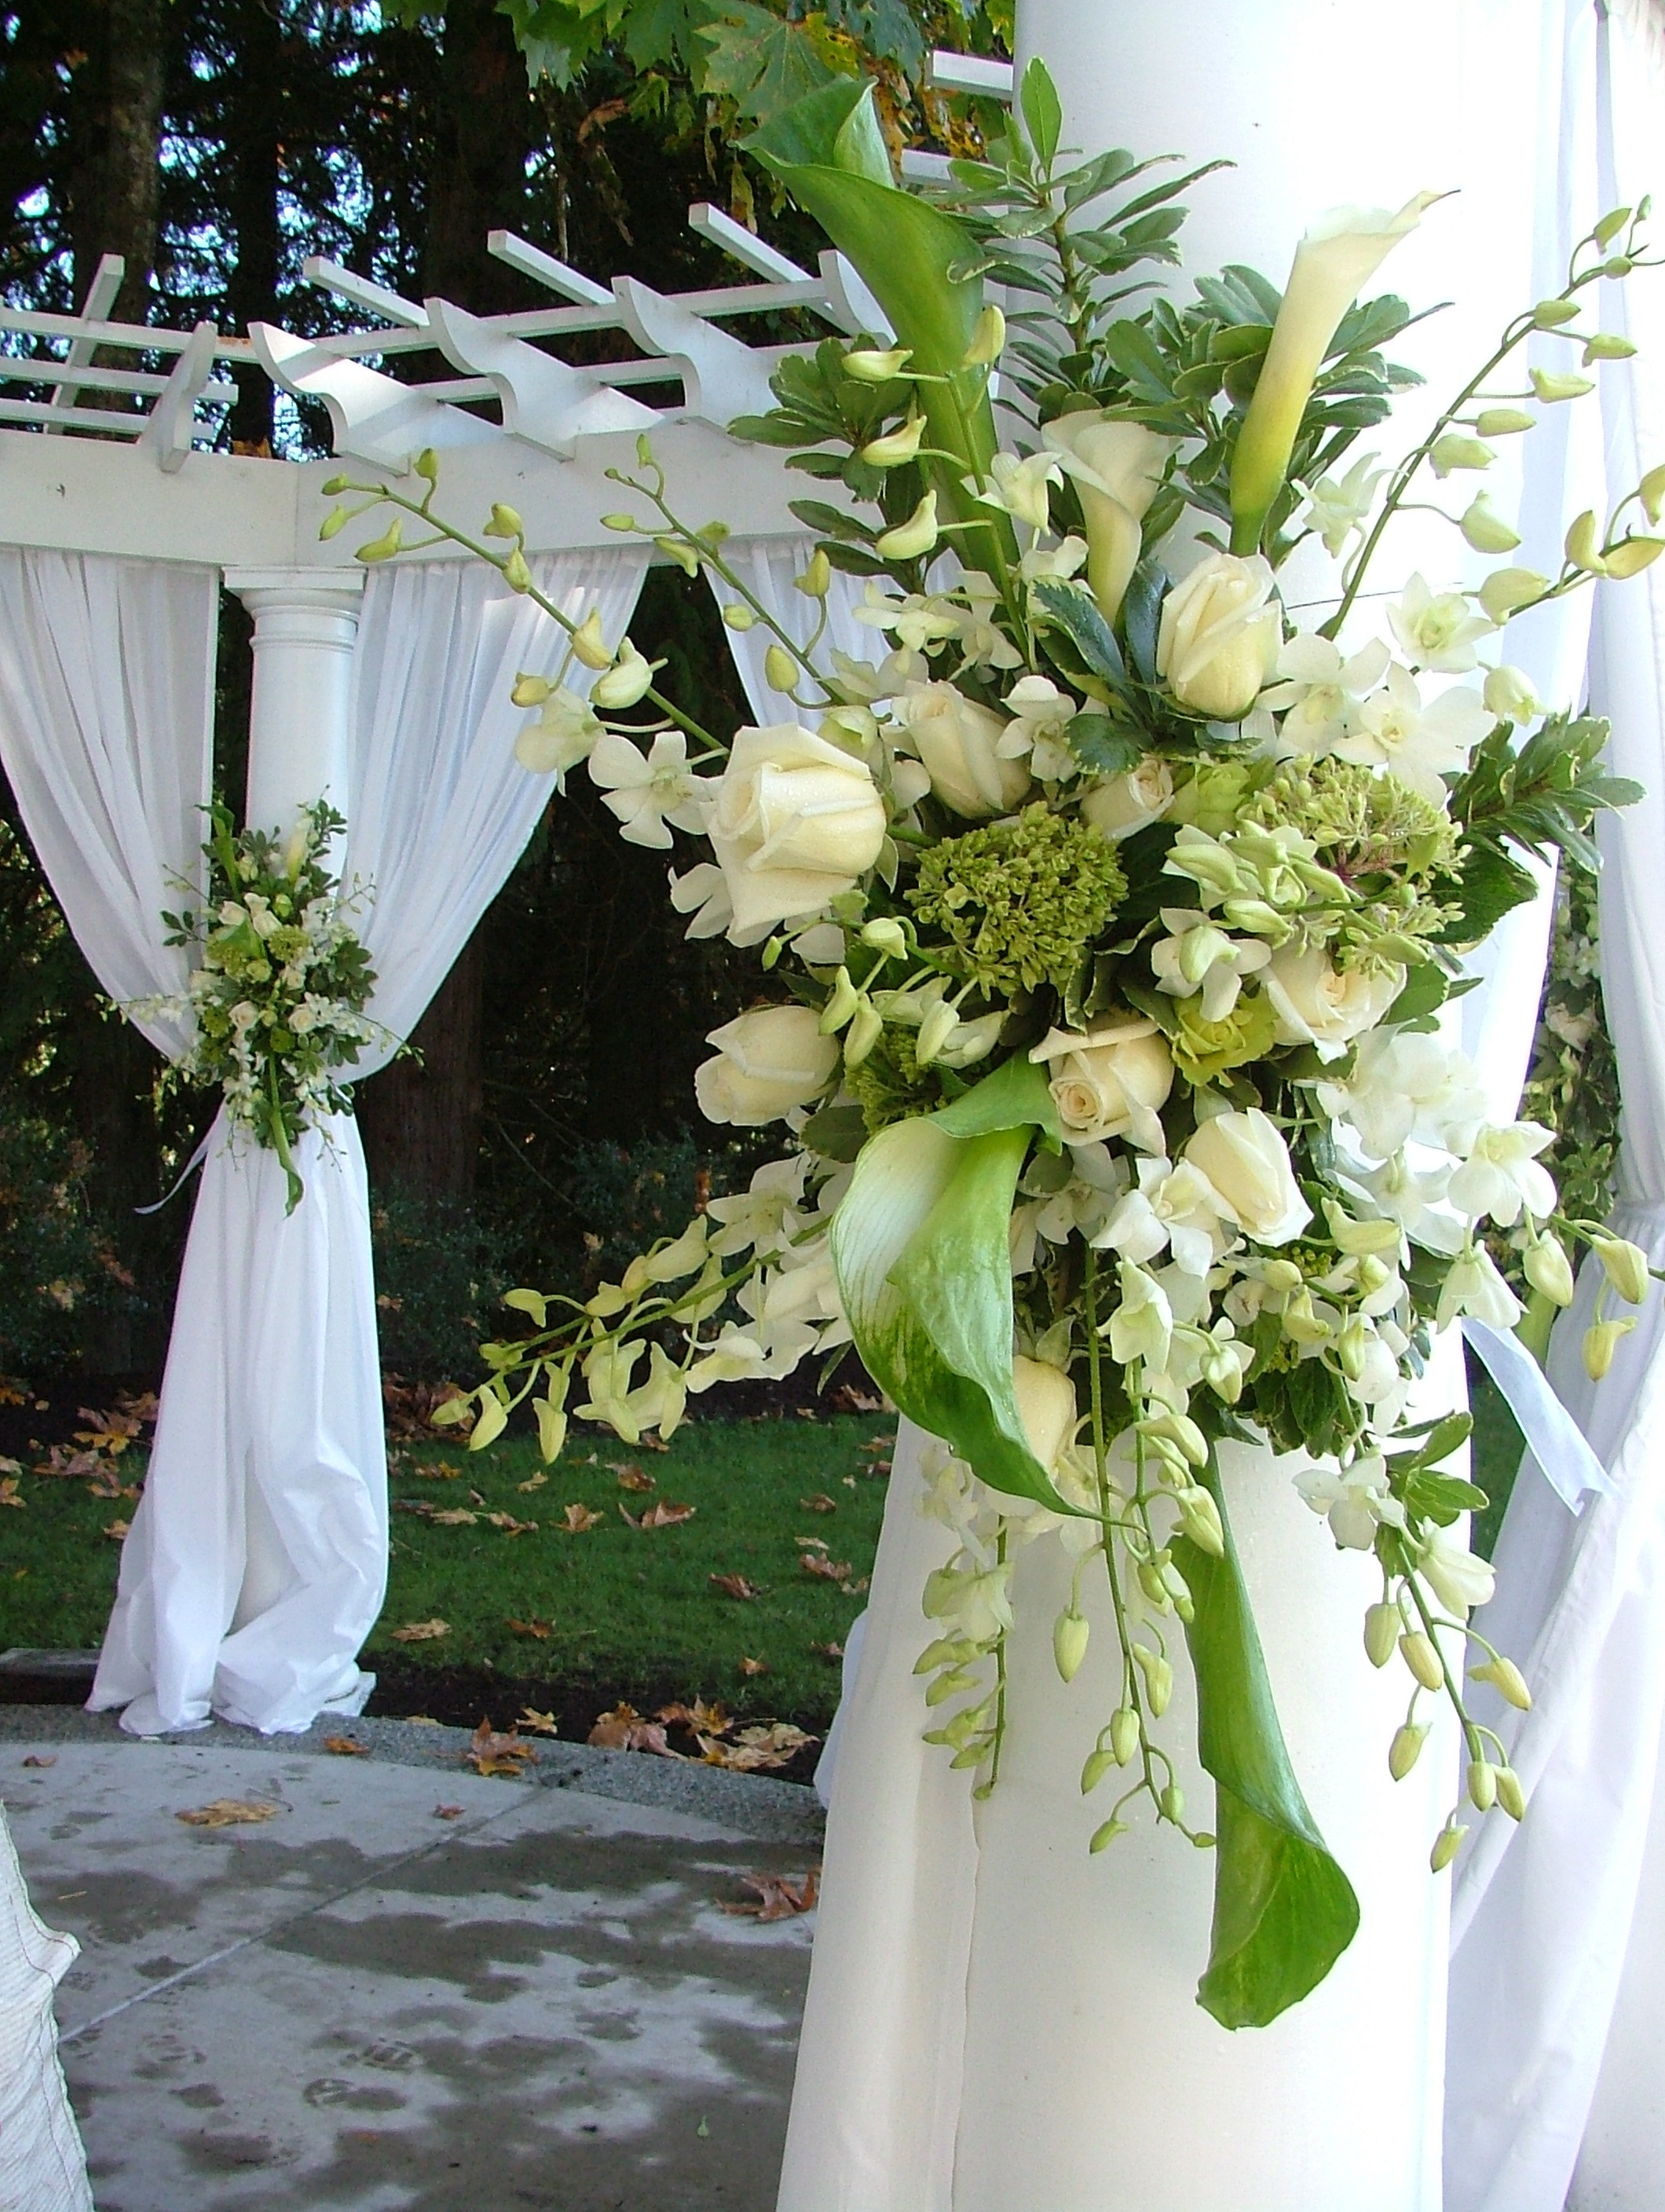 Filewhite and green floral spray wedding decorg wikimedia commons filewhite and green floral spray wedding decorg junglespirit